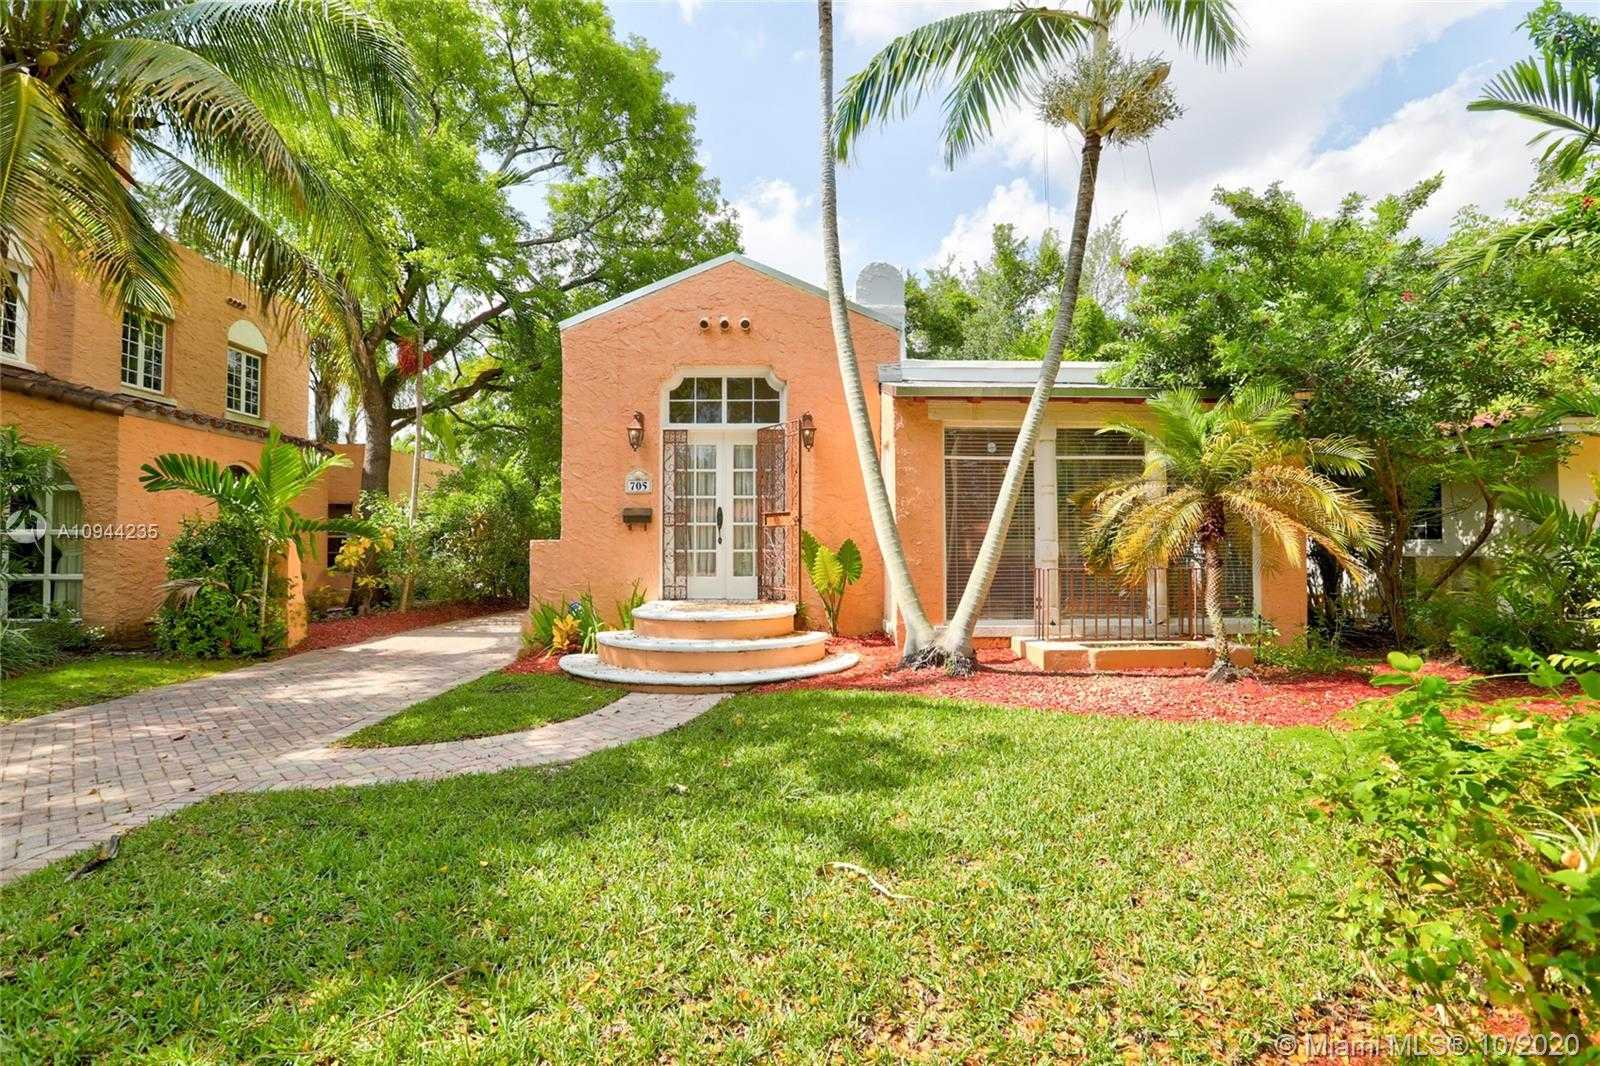 $639,888 - 2Br/1Ba -  for Sale in Coral Gables Sec B, Coral Gables